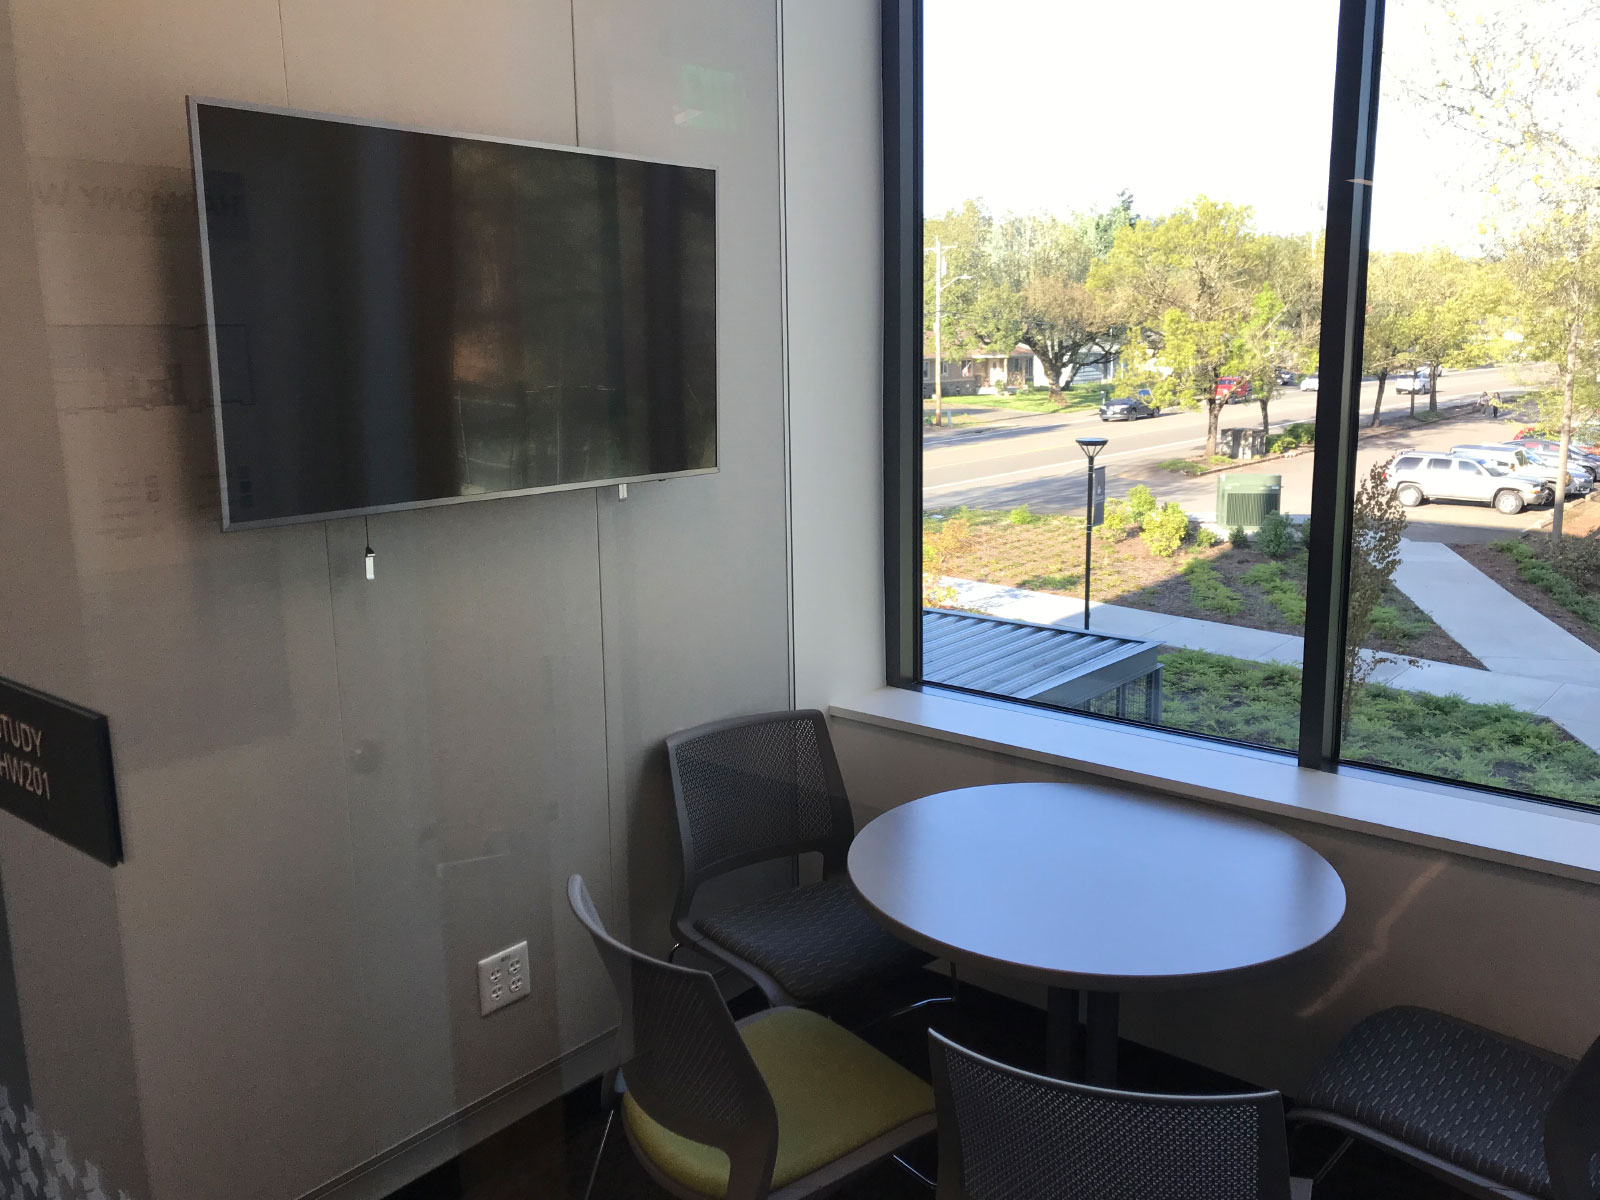 A TV screen in front of a window and small table with chairs in the Harmony campus conference room